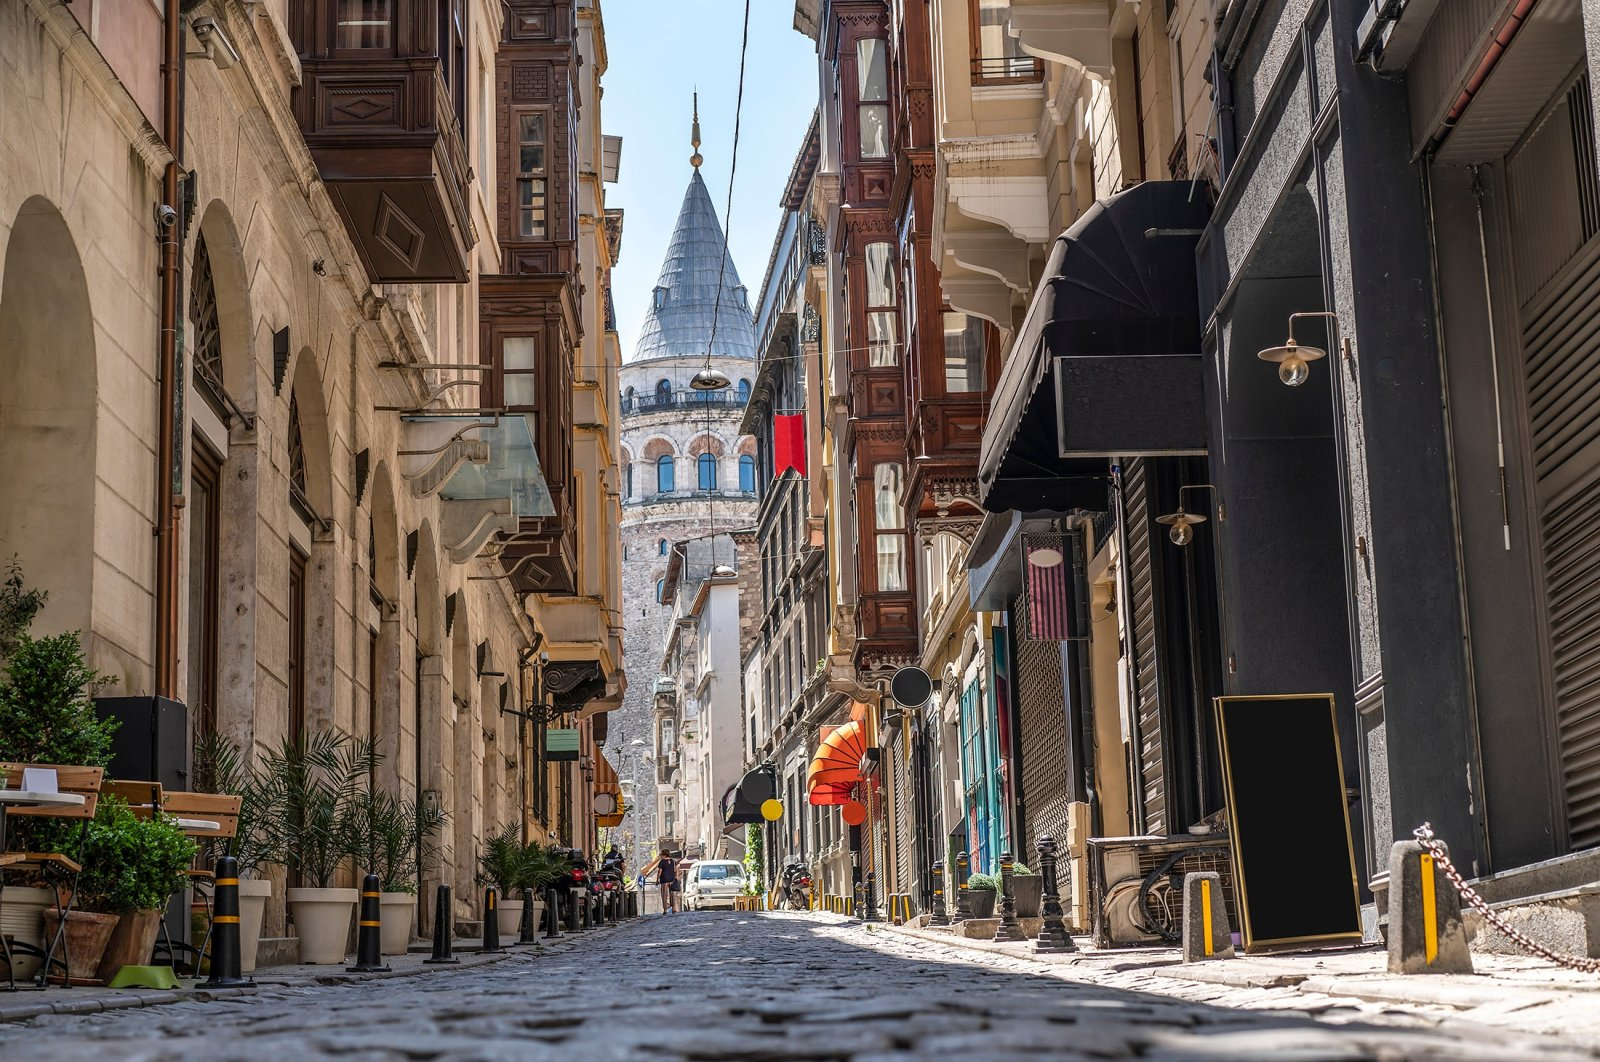 The Galata Tower is seen between historical buildings. (Shutterstock Photo)